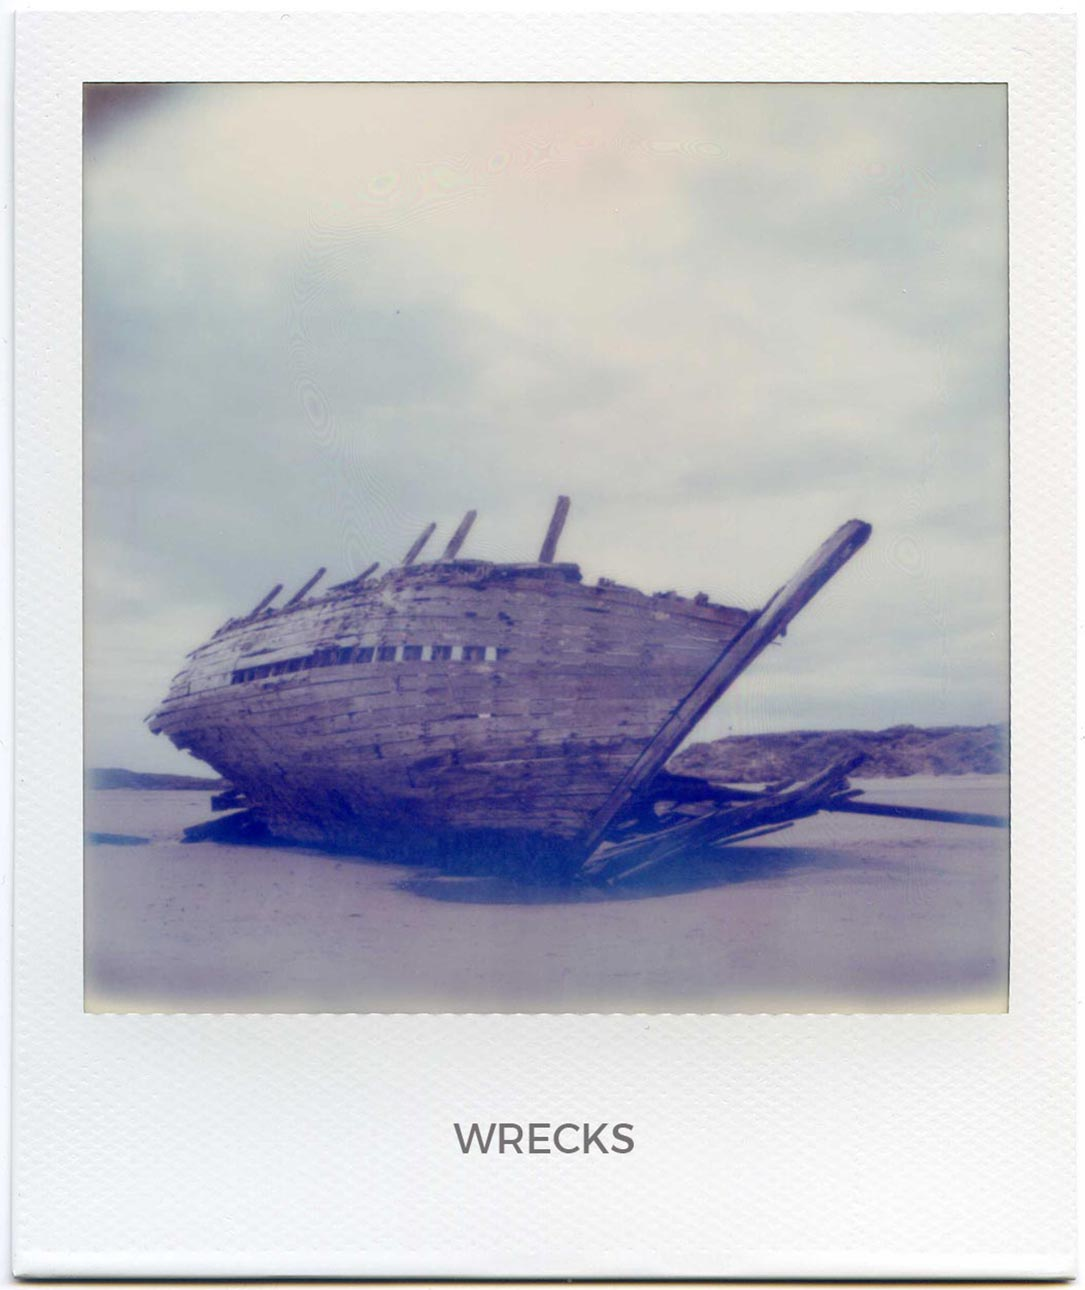 Florent Dudognon wrecks polaroid